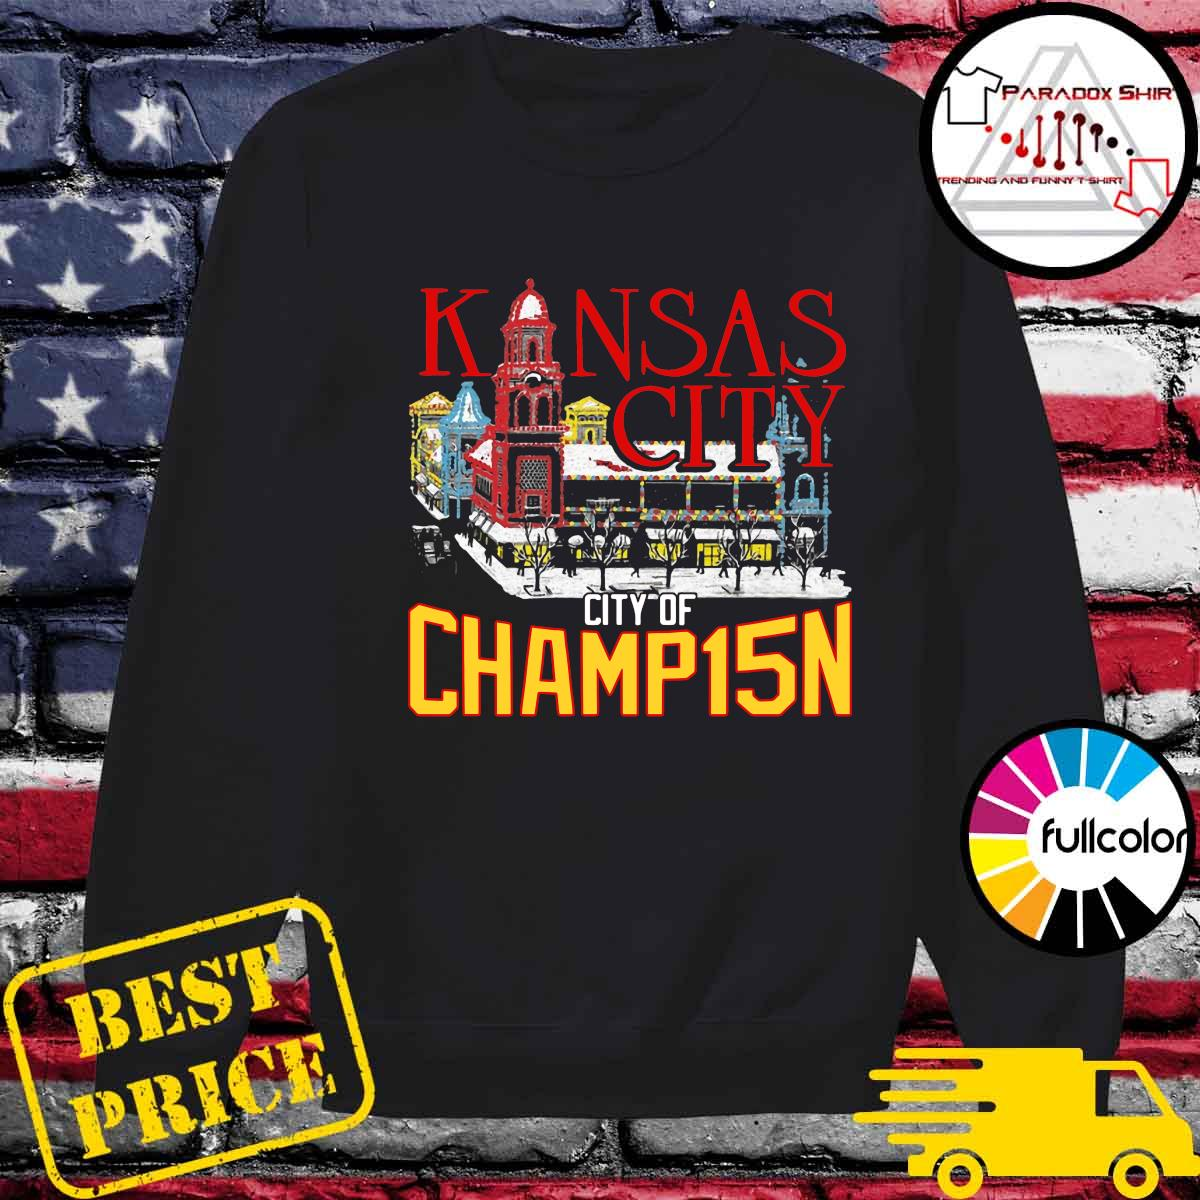 Kansas City City Of Champ15n Shirt Sweater